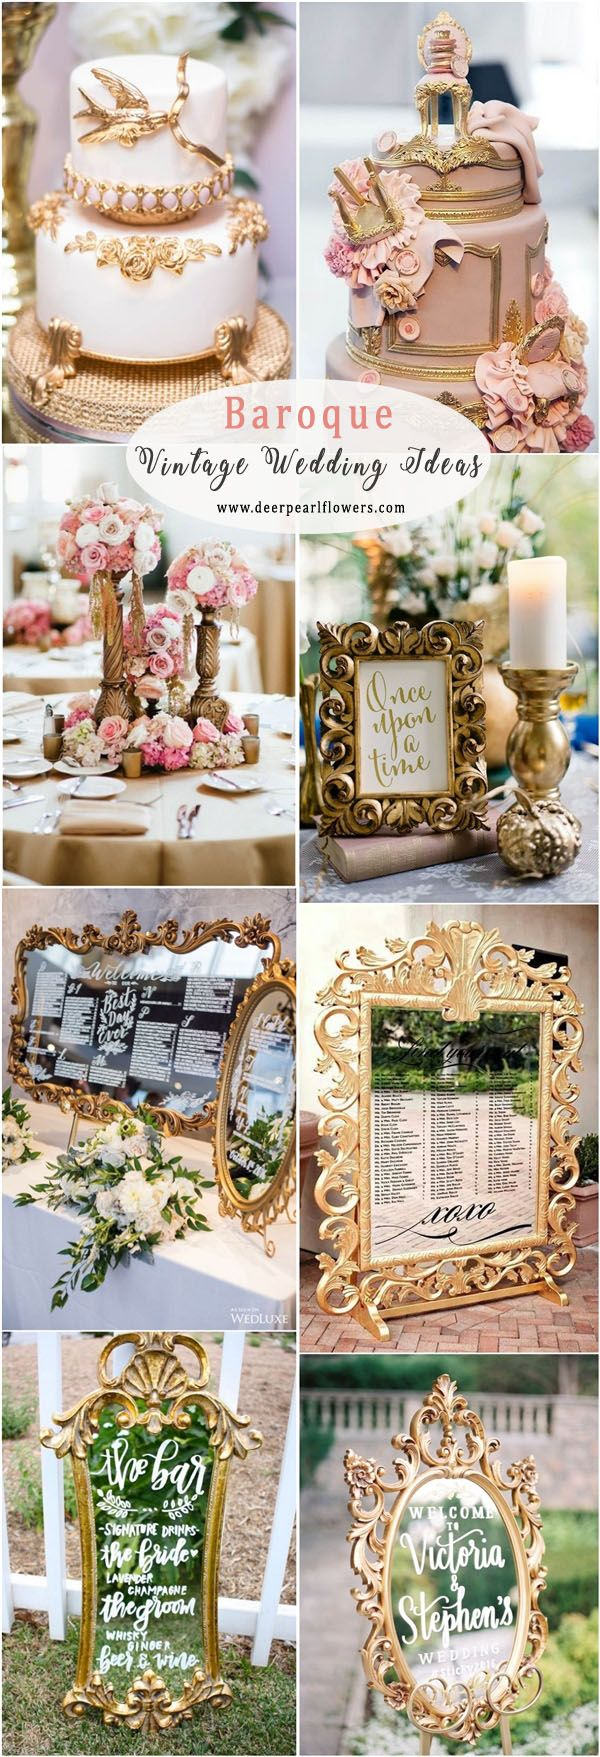 Wedding decorations gold and pink december 2018 Top  Vintage Wedding Trend Ideas for   Baroque wedding